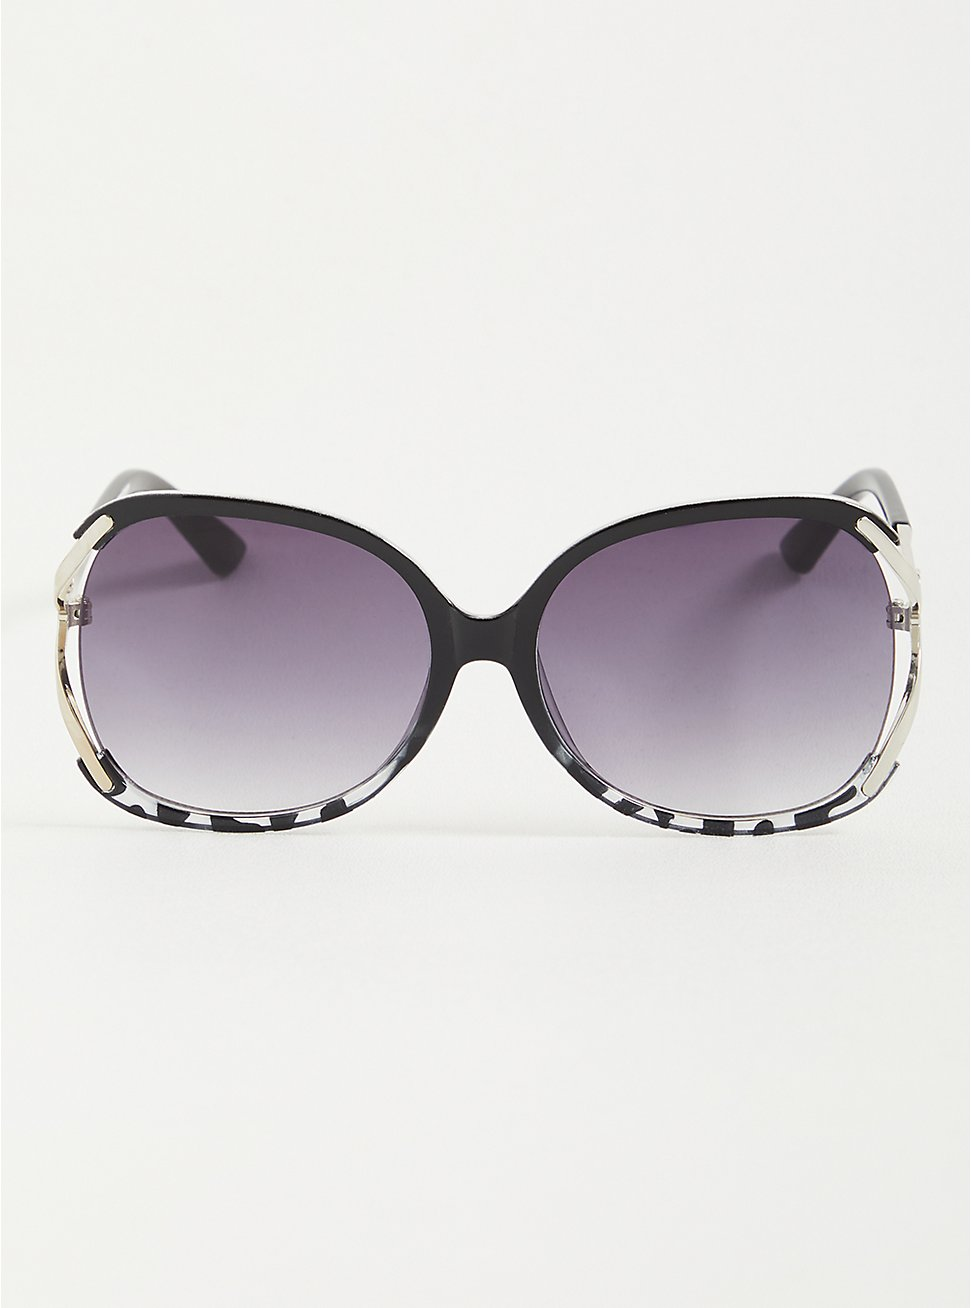 Sunglasses With Side Cutouts - Black To Leopard Fade , , hi-res